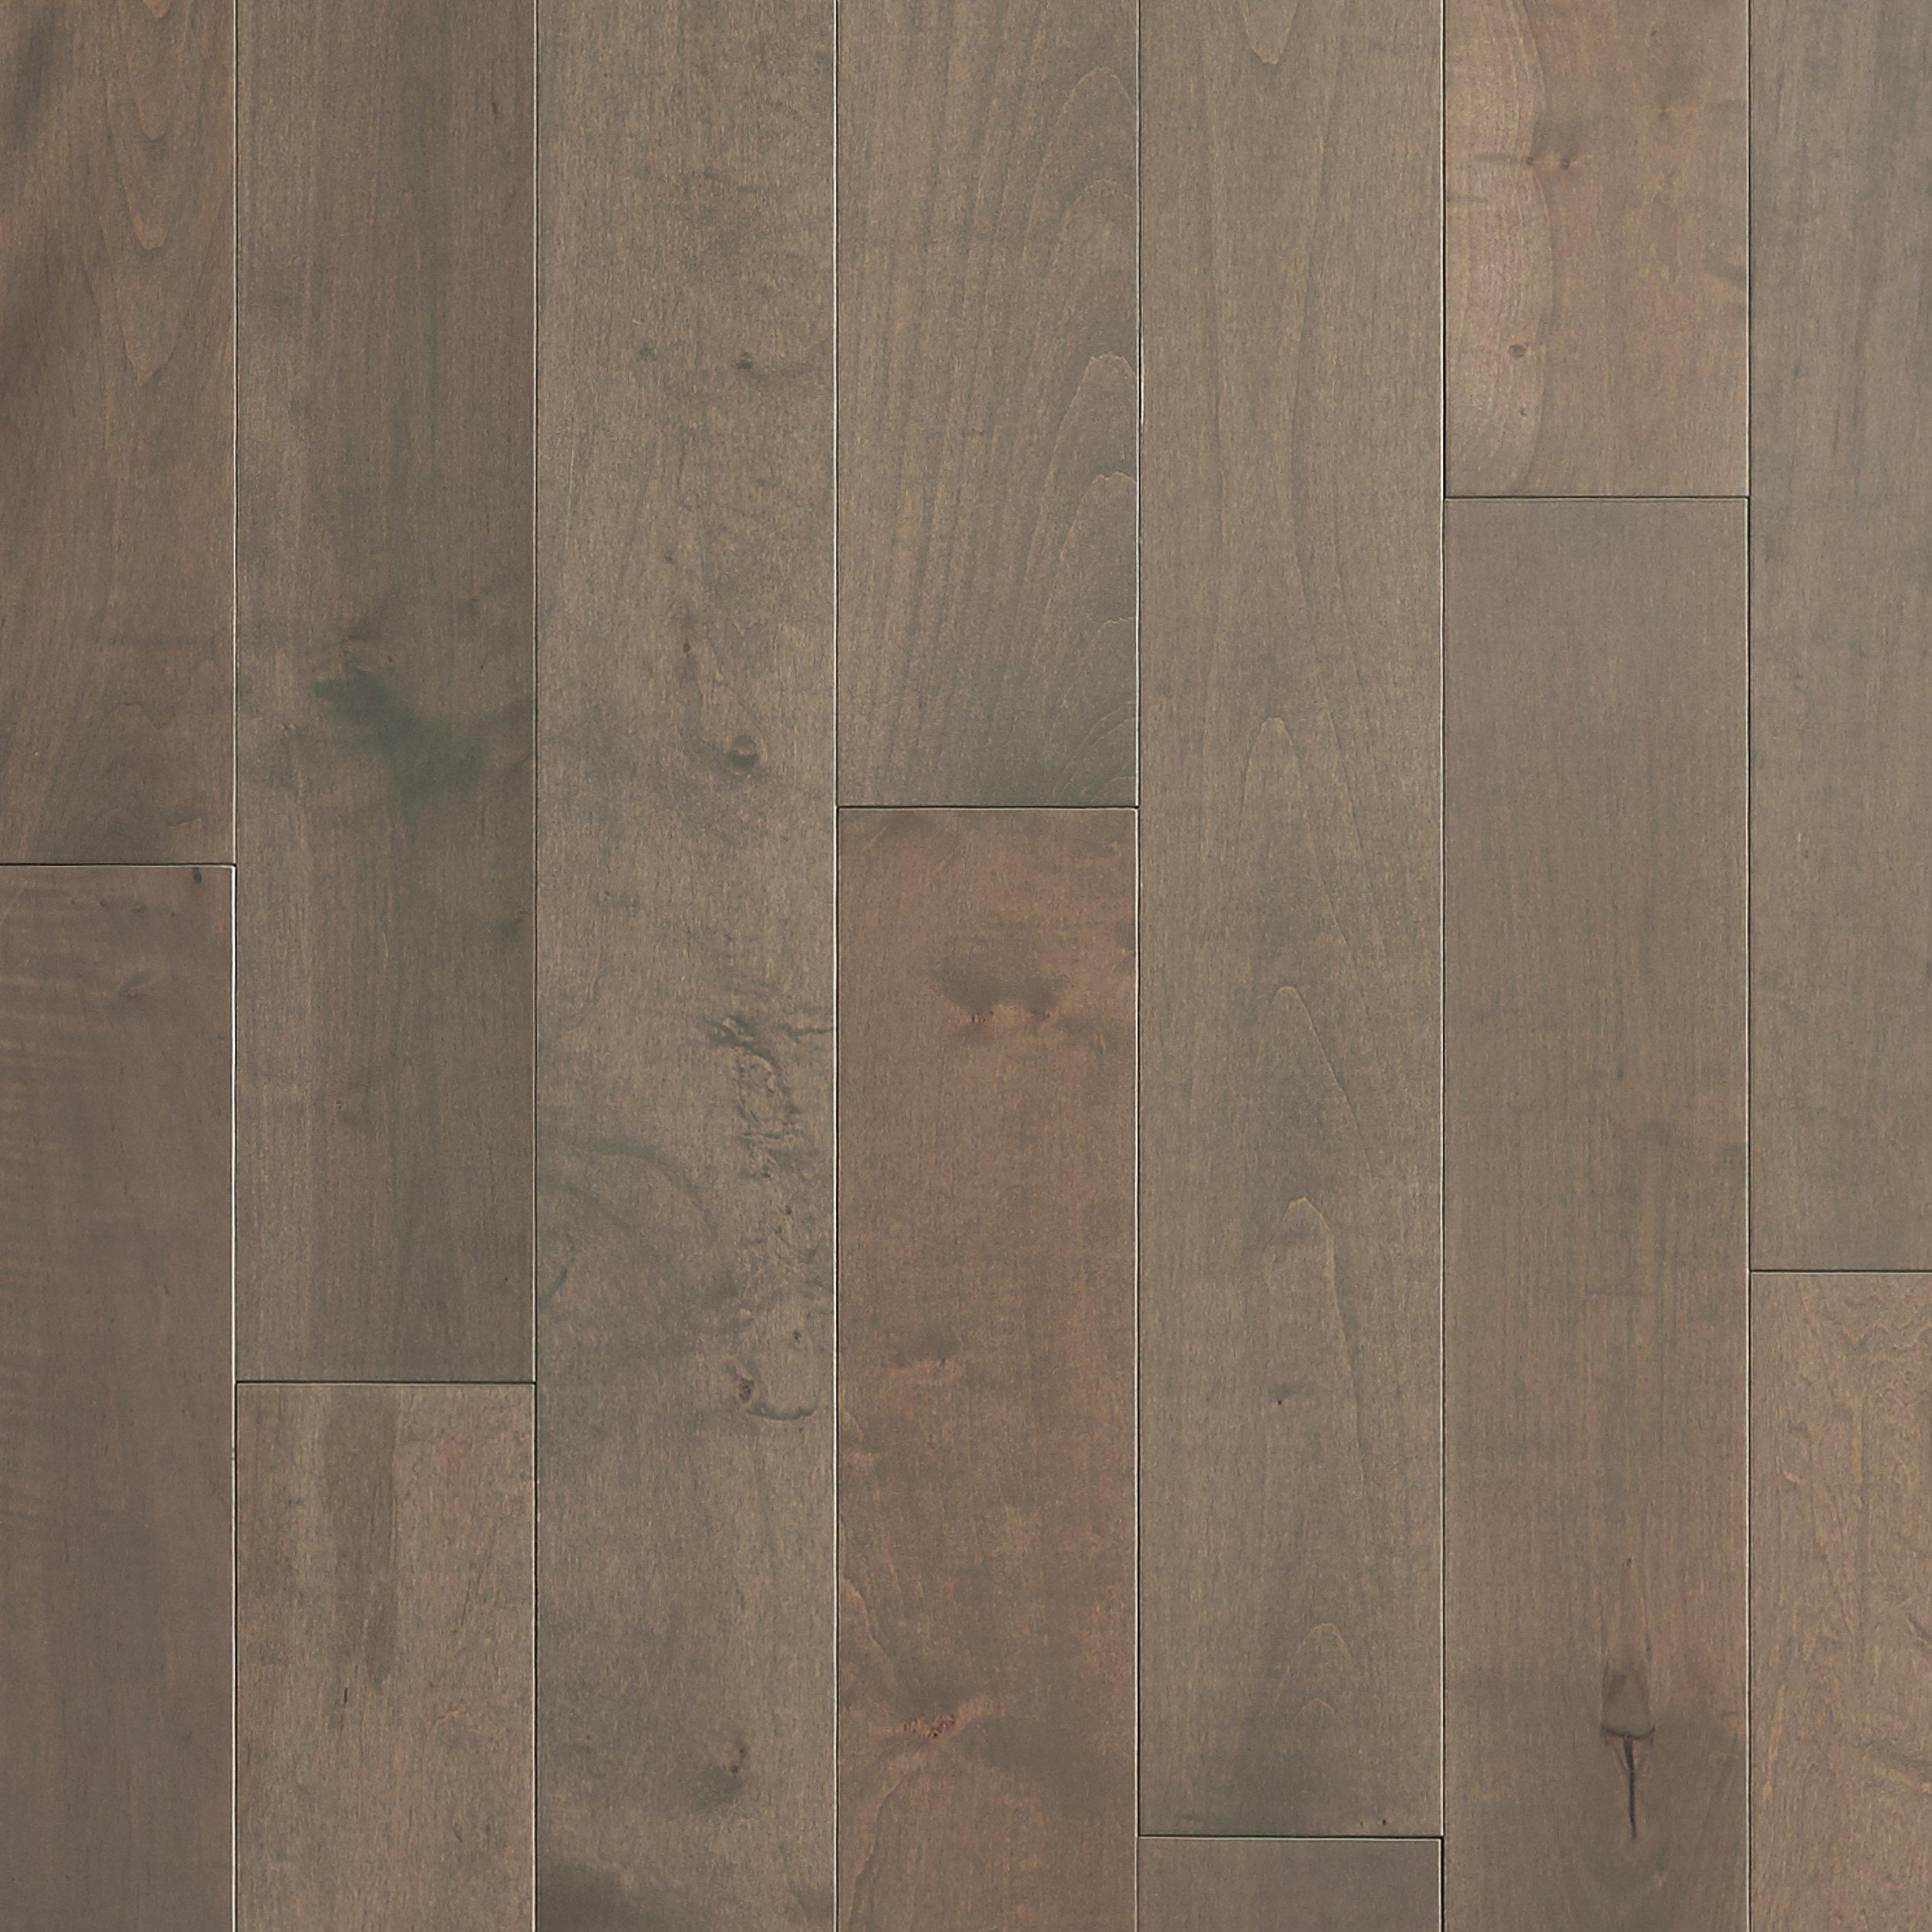 Coastal Maple Smooth Solid Hardwood   3/4in. X 5in.   100213495   Floor And  Decor